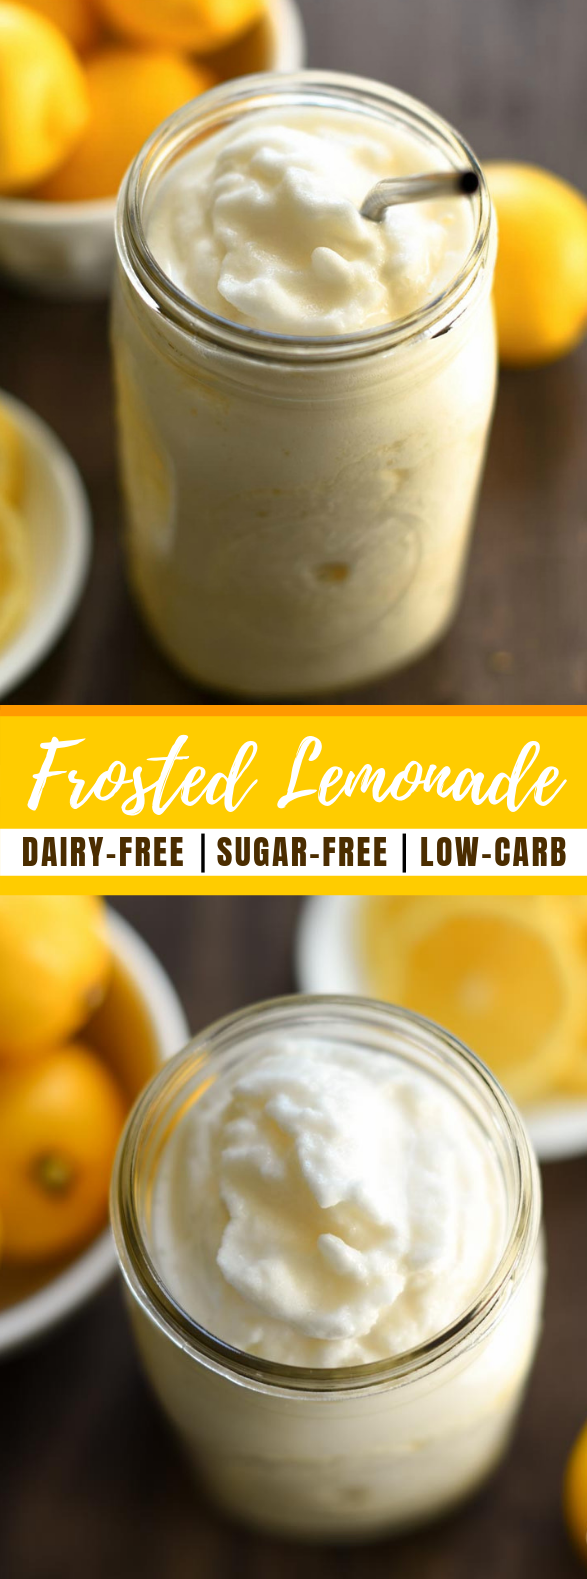 Frosted Lemonade – Dairy Free, Sugar Free #drinks #healthydrink